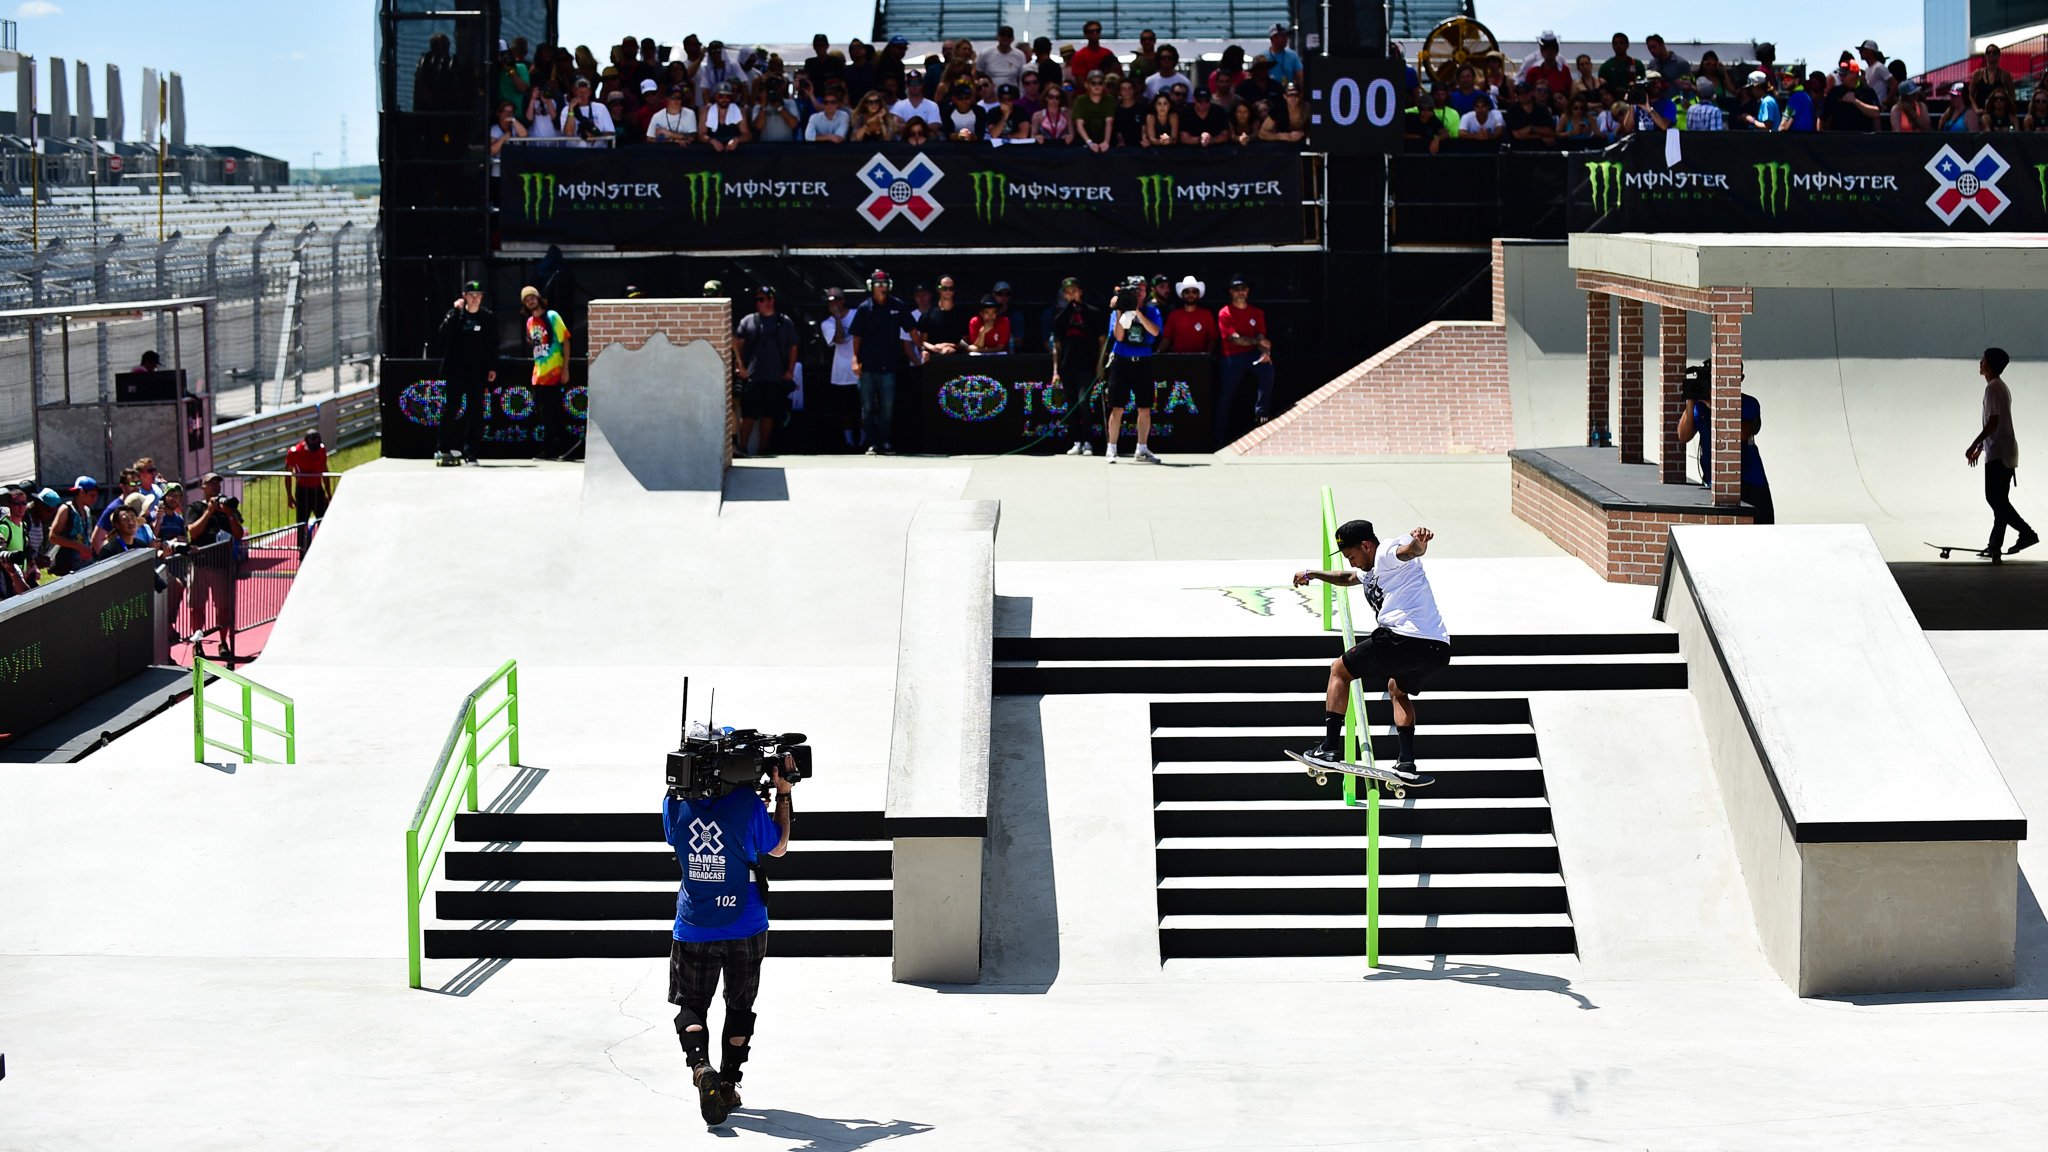 Chaz Ortiz's Official X Games Athlete Biography